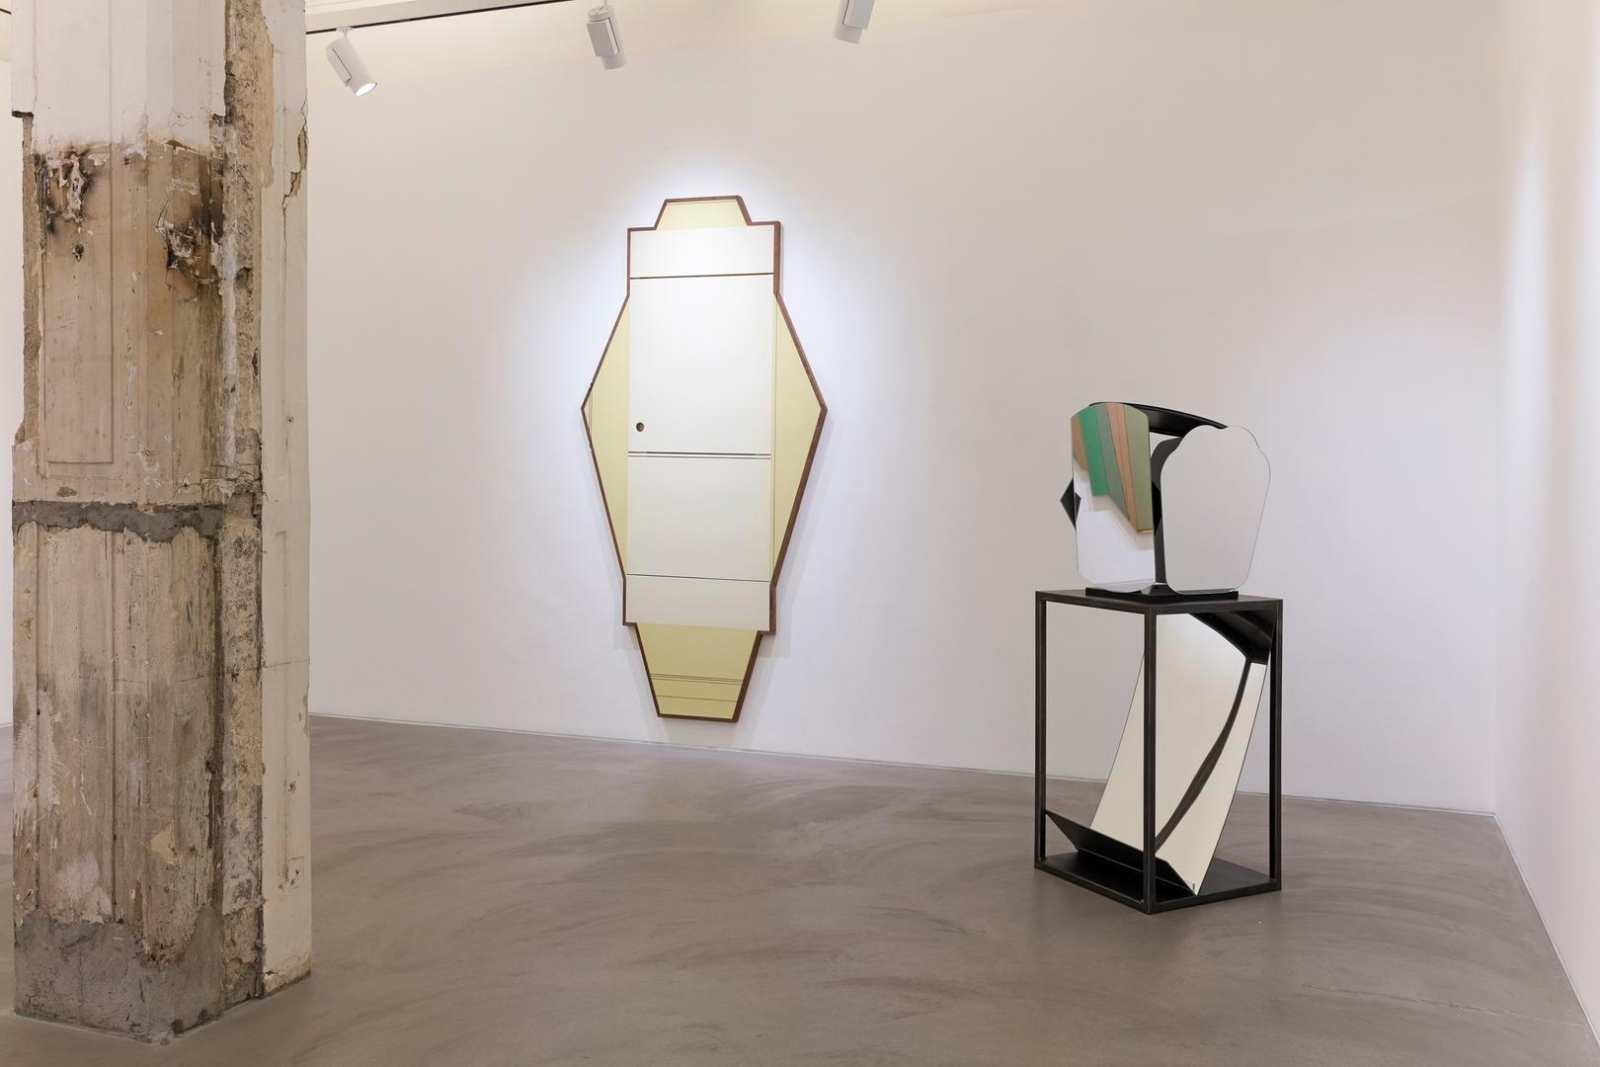 Radical Materiality installation view 2